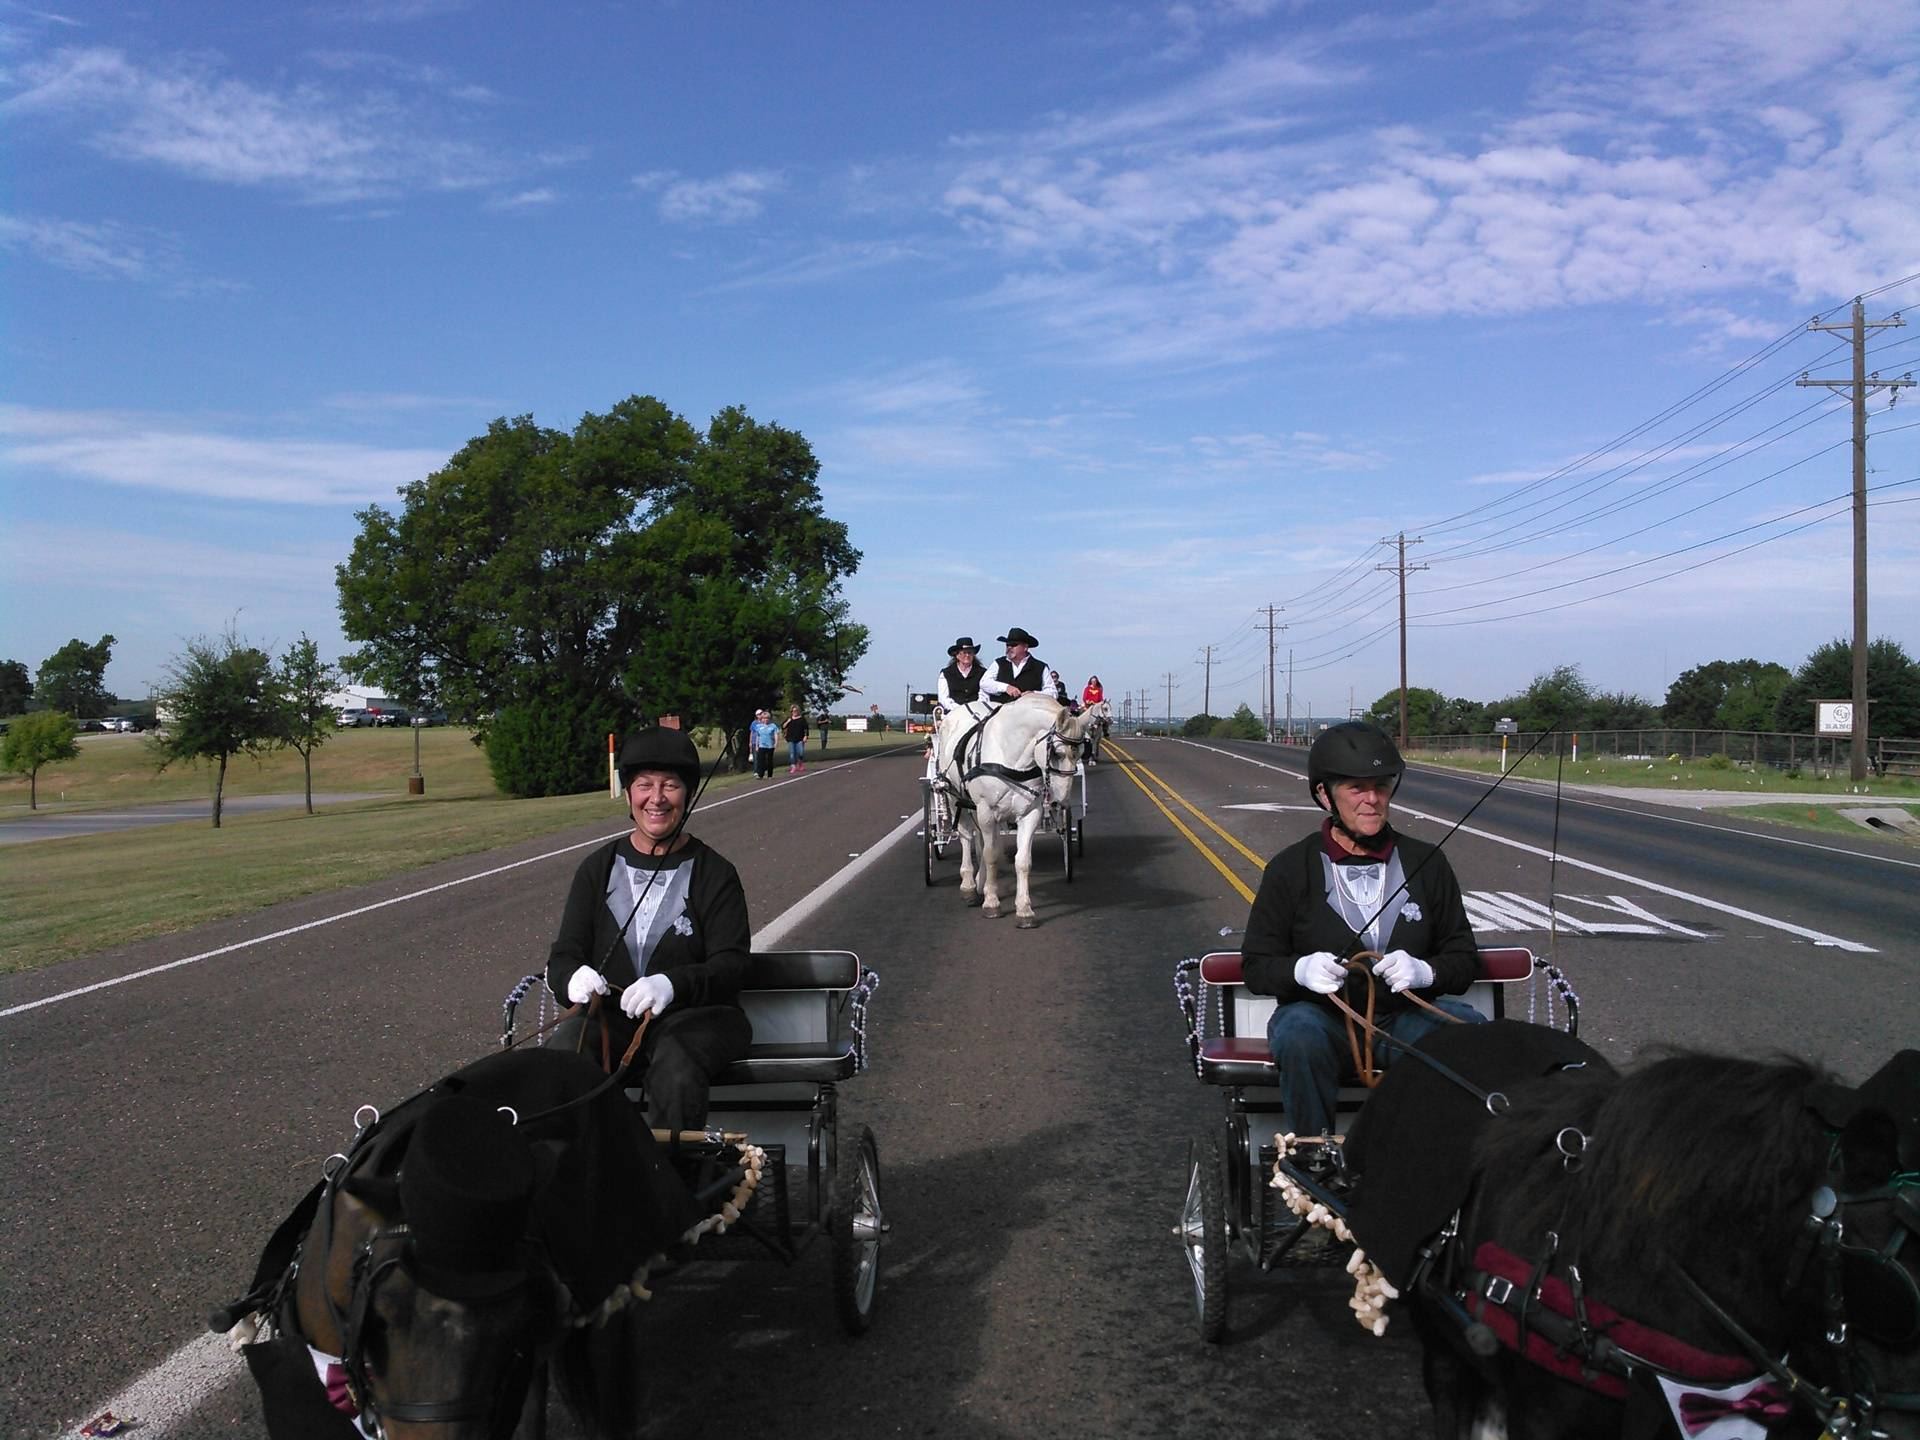 On the road. The carriage horse behind the boys wasn't quite sure what they were.